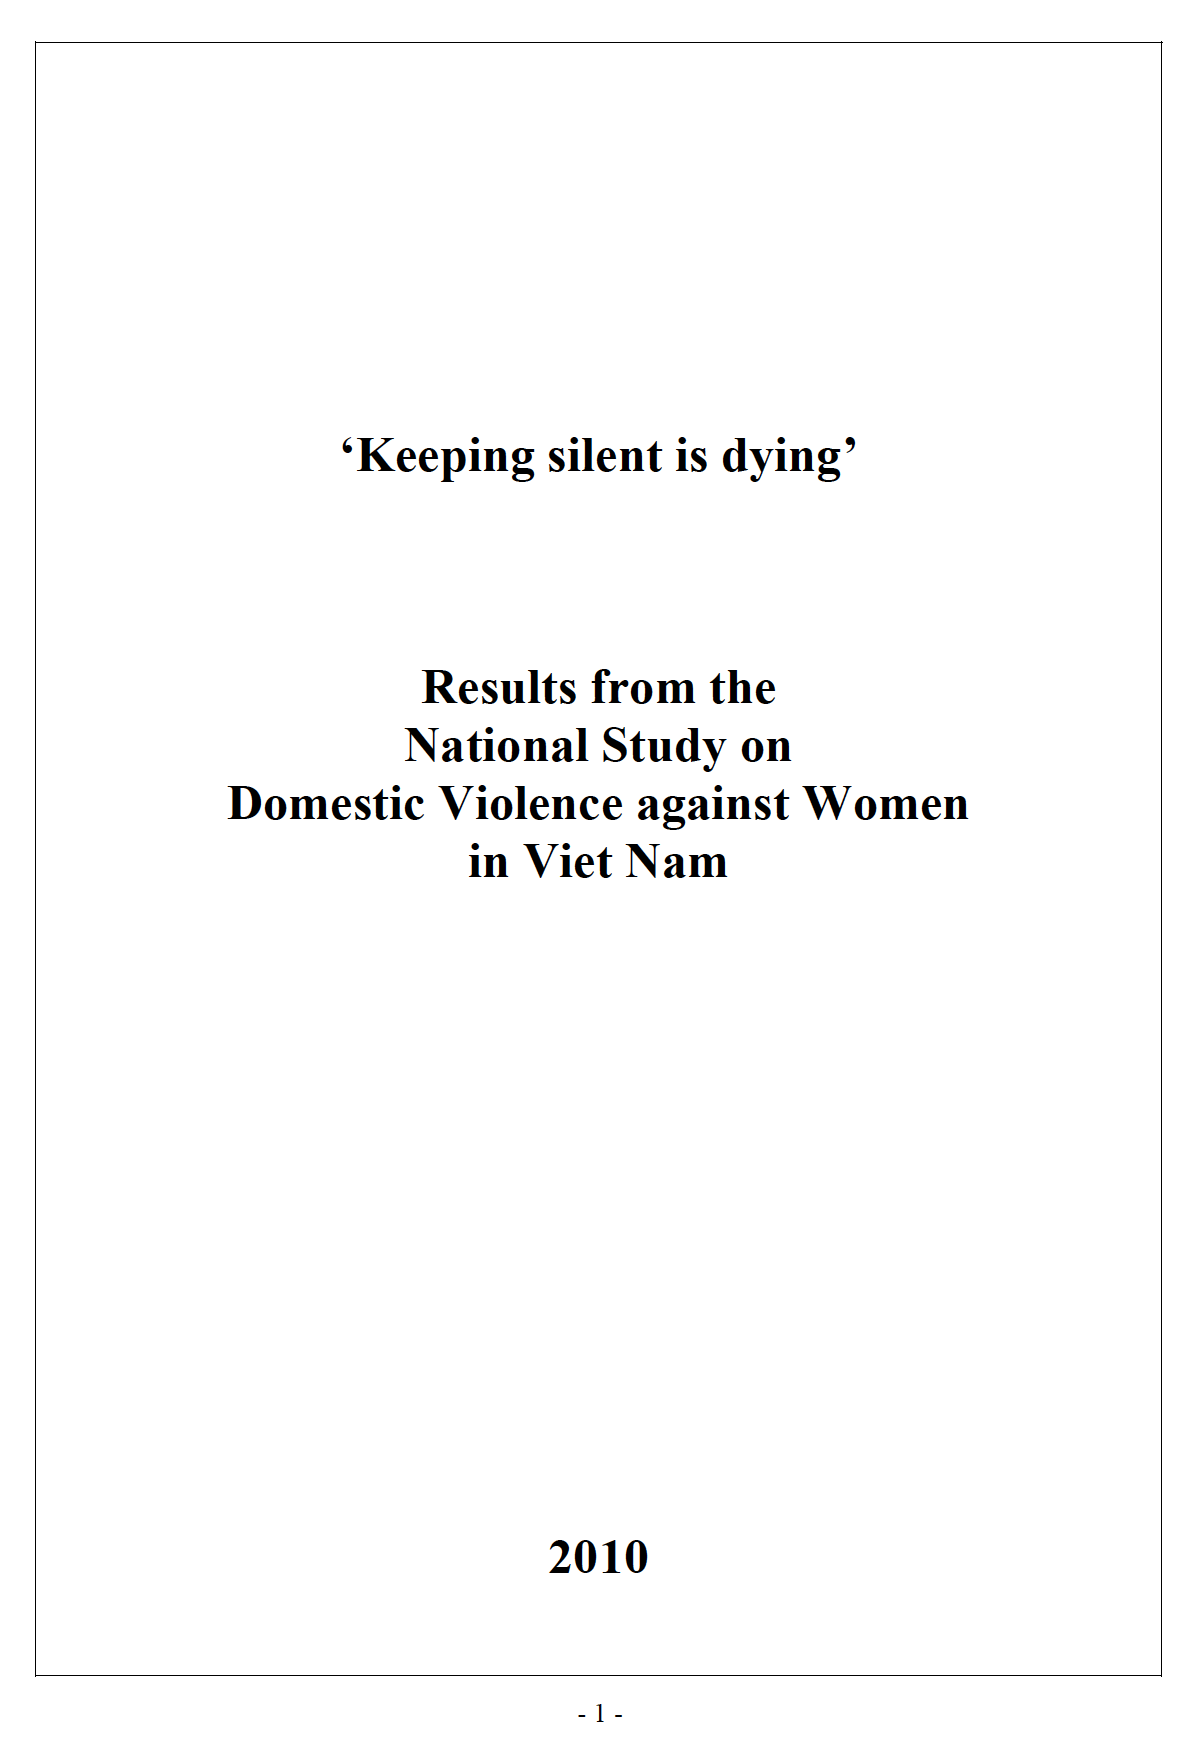 Cover of National Study on Domestic Violence against Women in Viet Nam 2010: full report